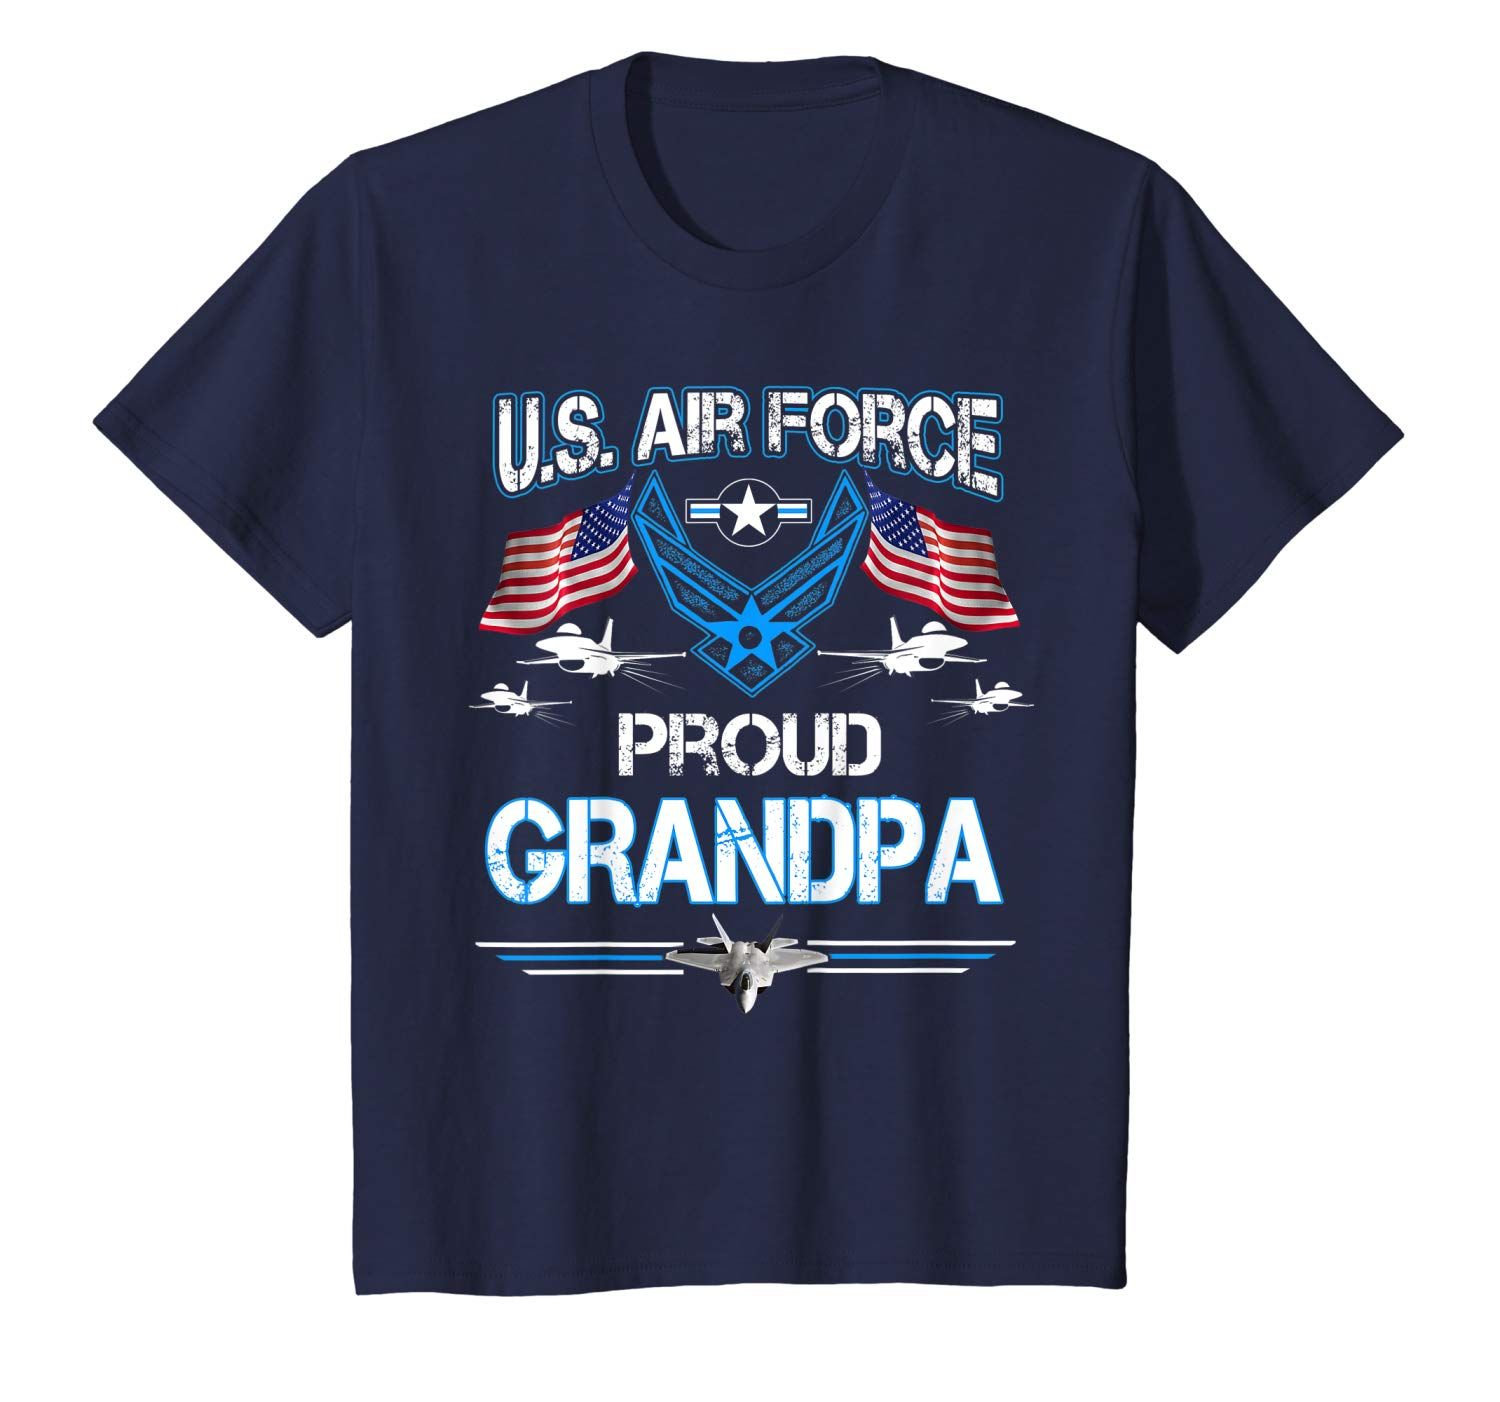 Proud Grandpa U.S. Air Force Stars Air Force Family Gift T